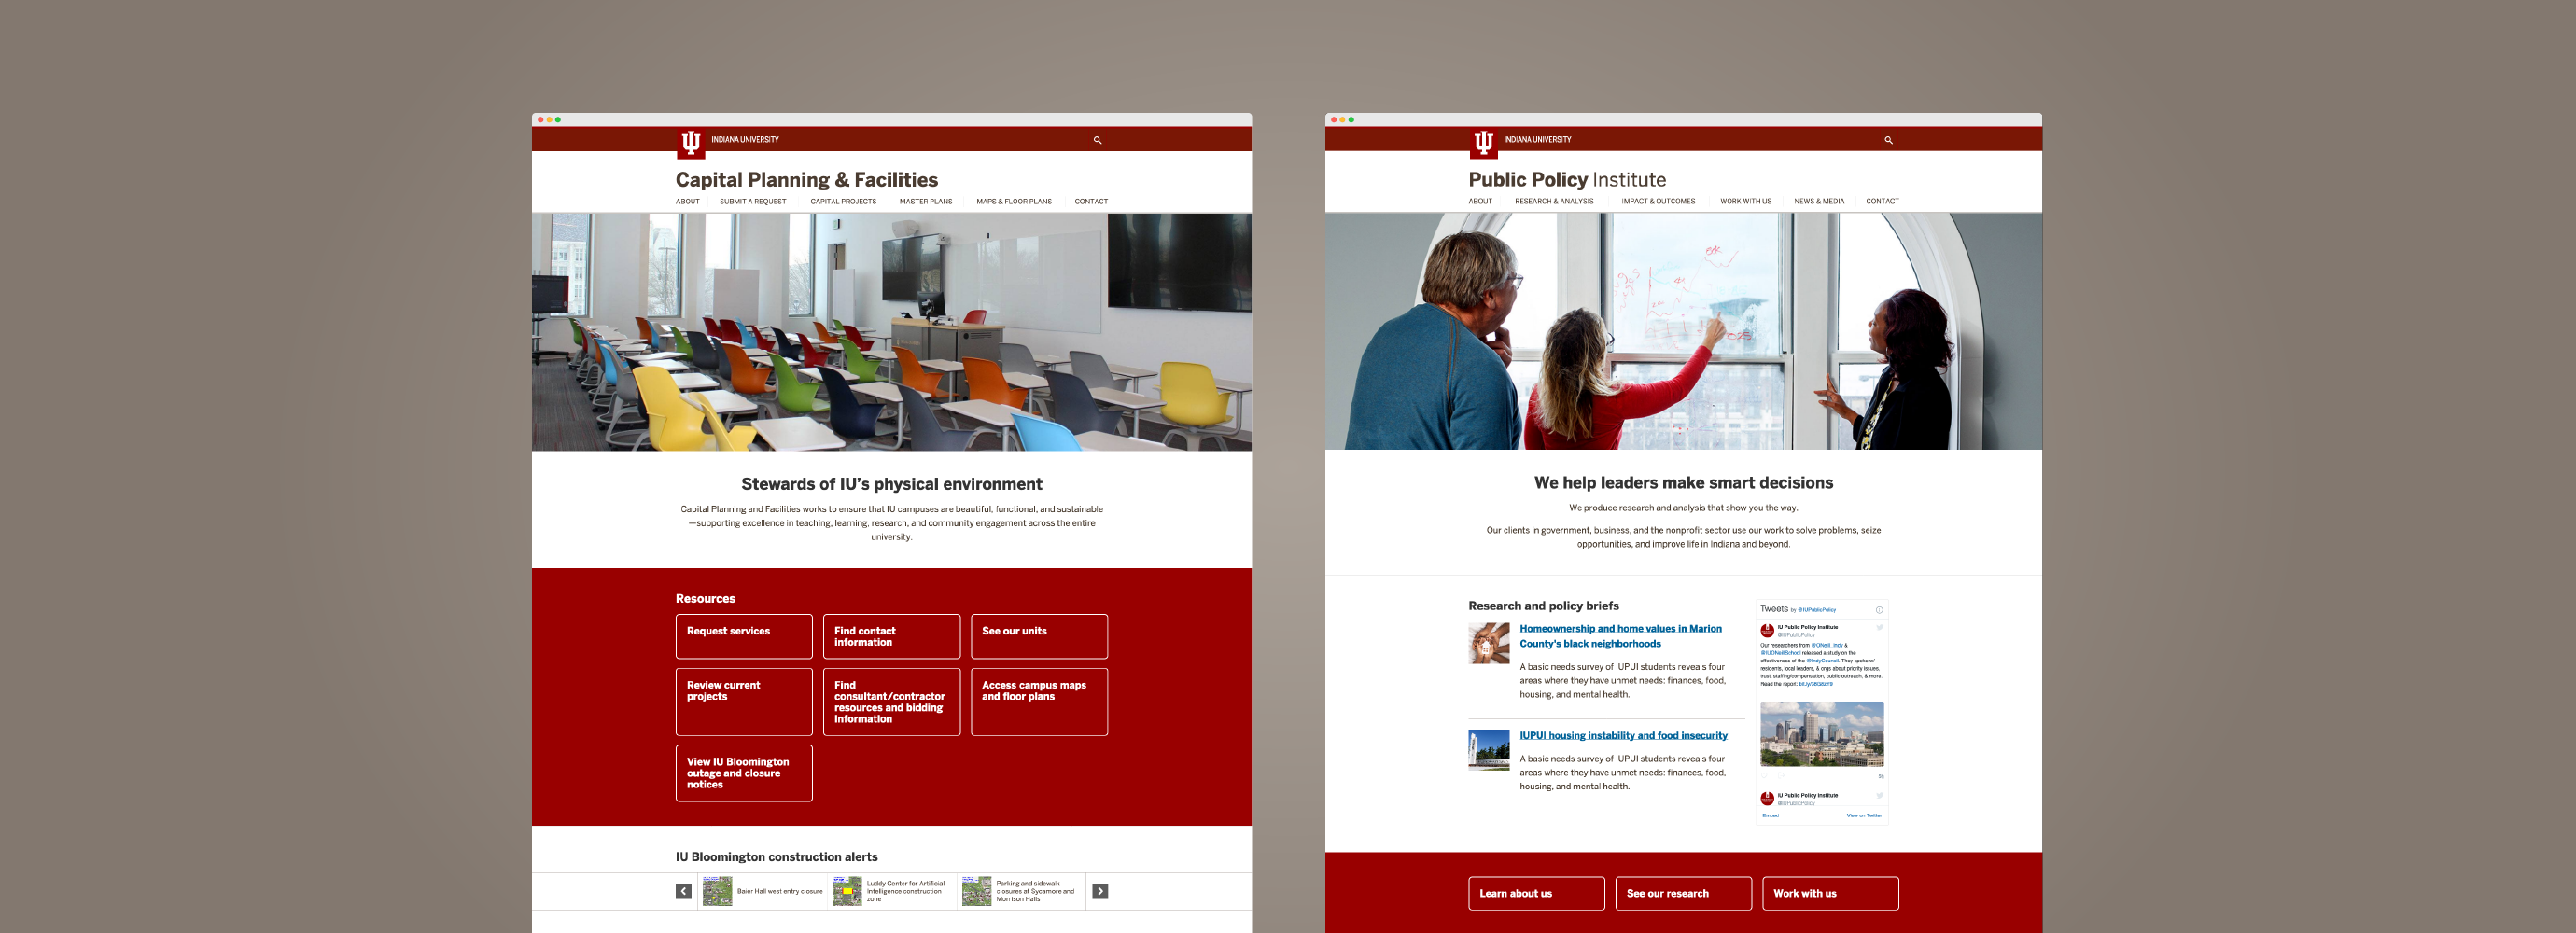 Examples of two webpages — Capital Planning & Facilities and the Public Policy Institute